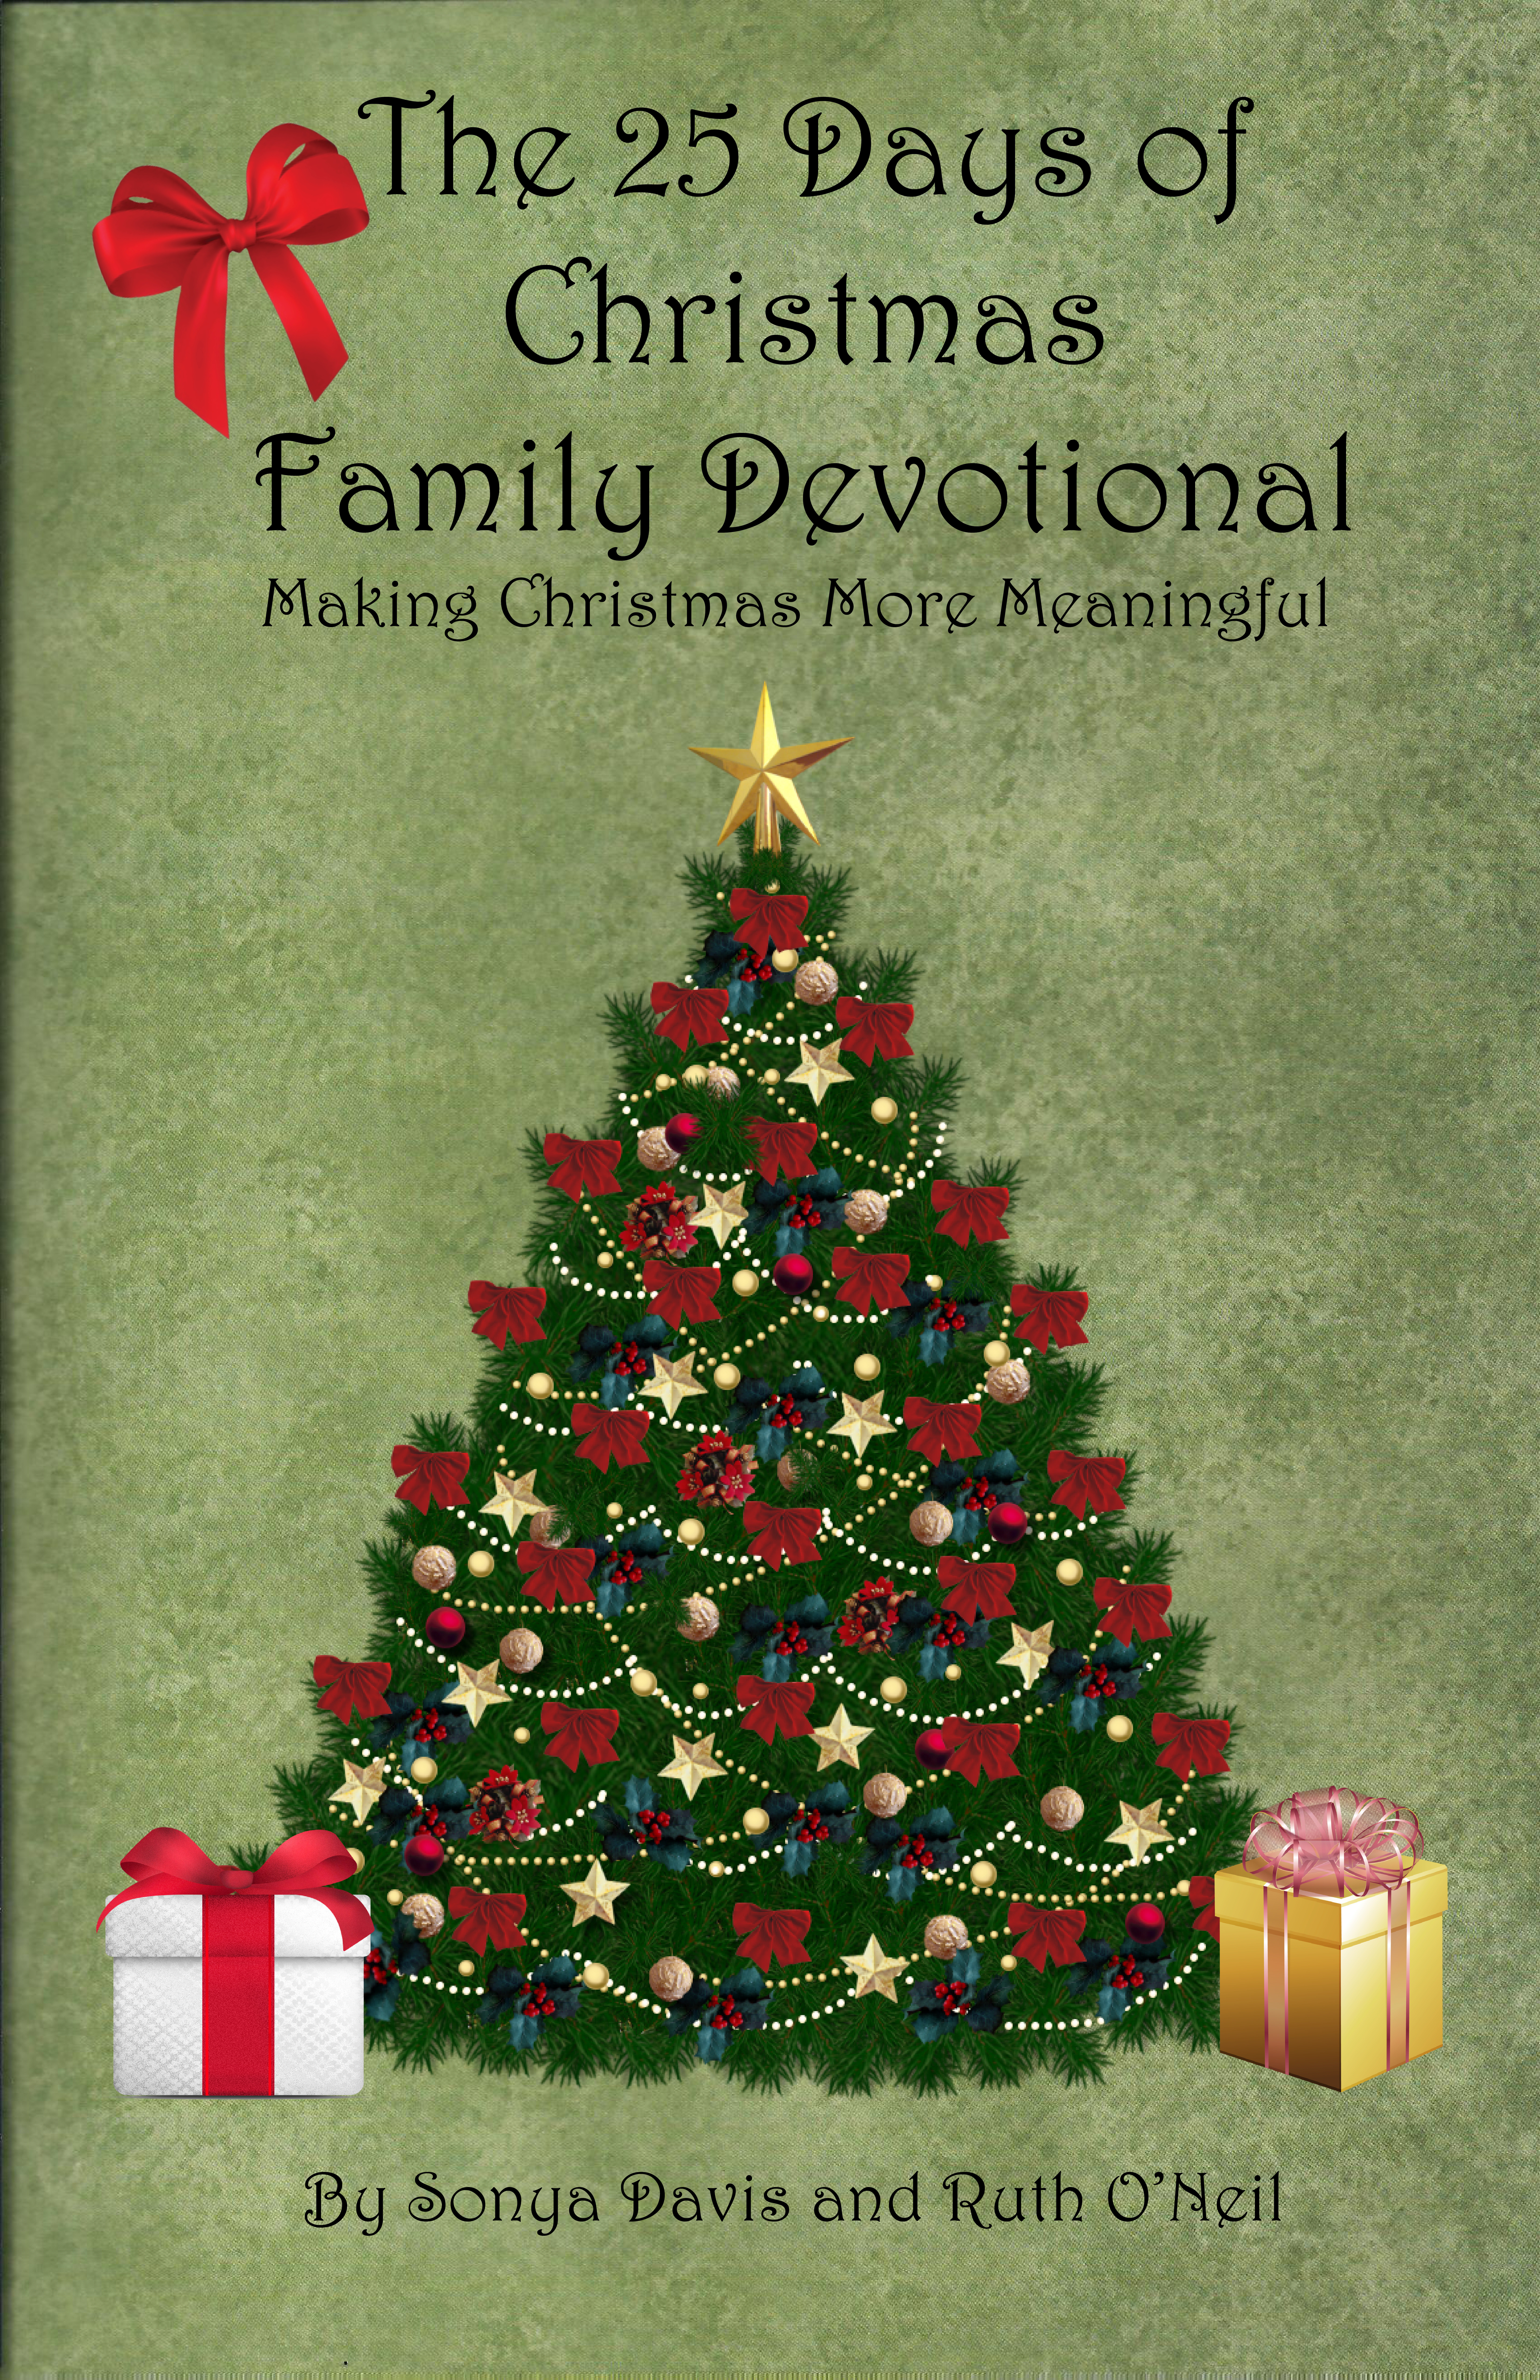 shes sharing a favorite christmas memory as part of her blog tour for her bookthe 25 days of christmas family devotional